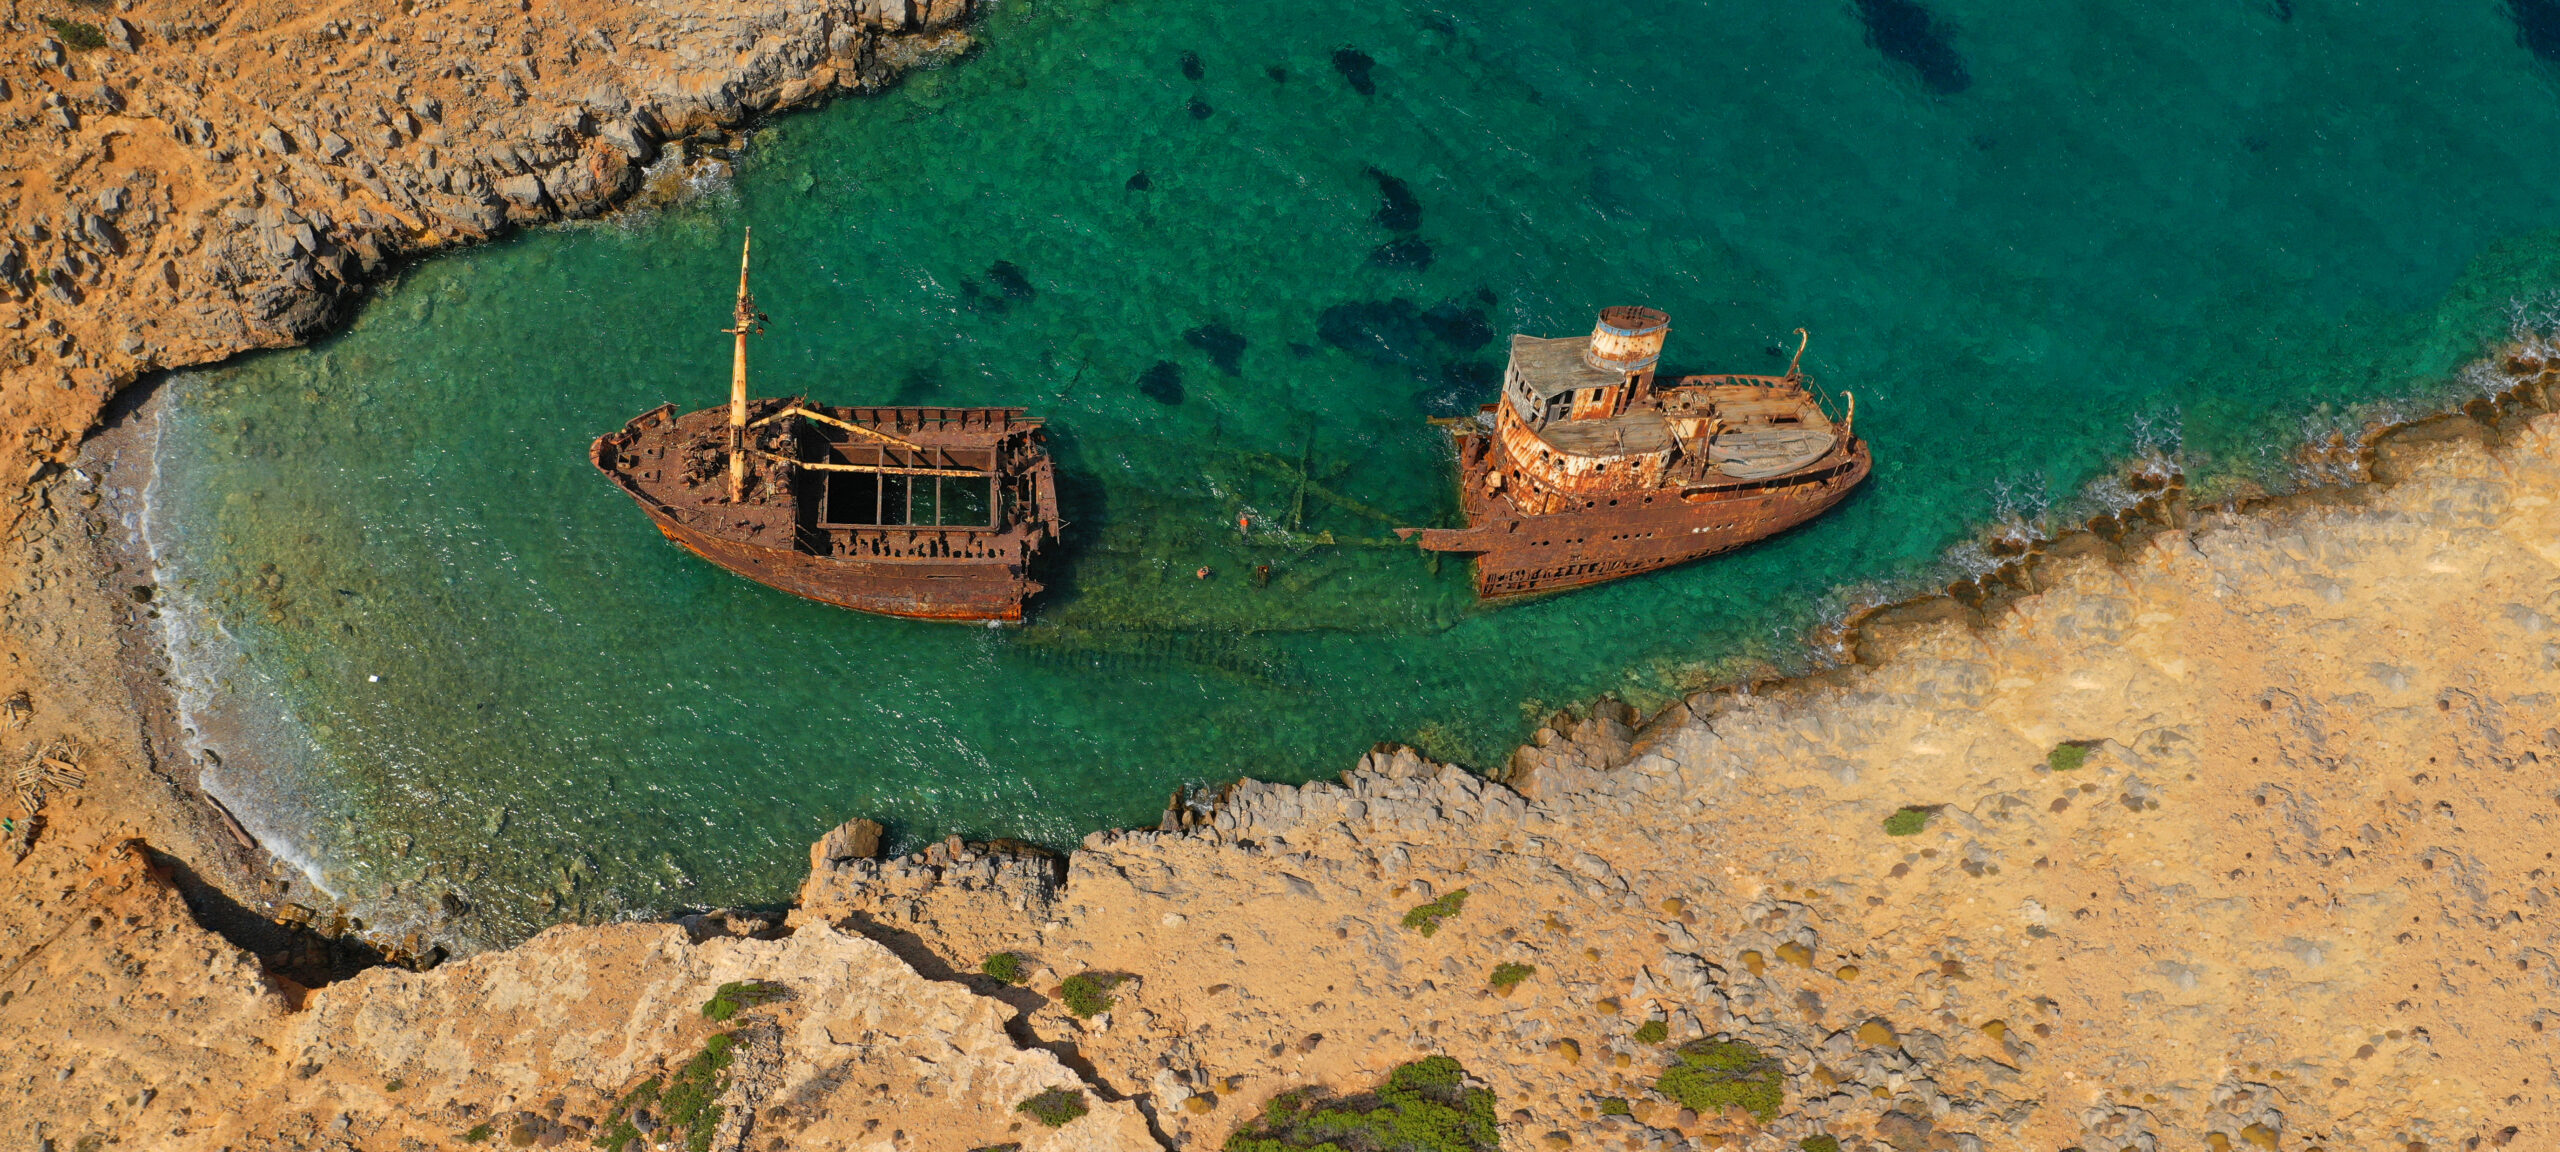 The Cycladic island with its own unknown shipwreck